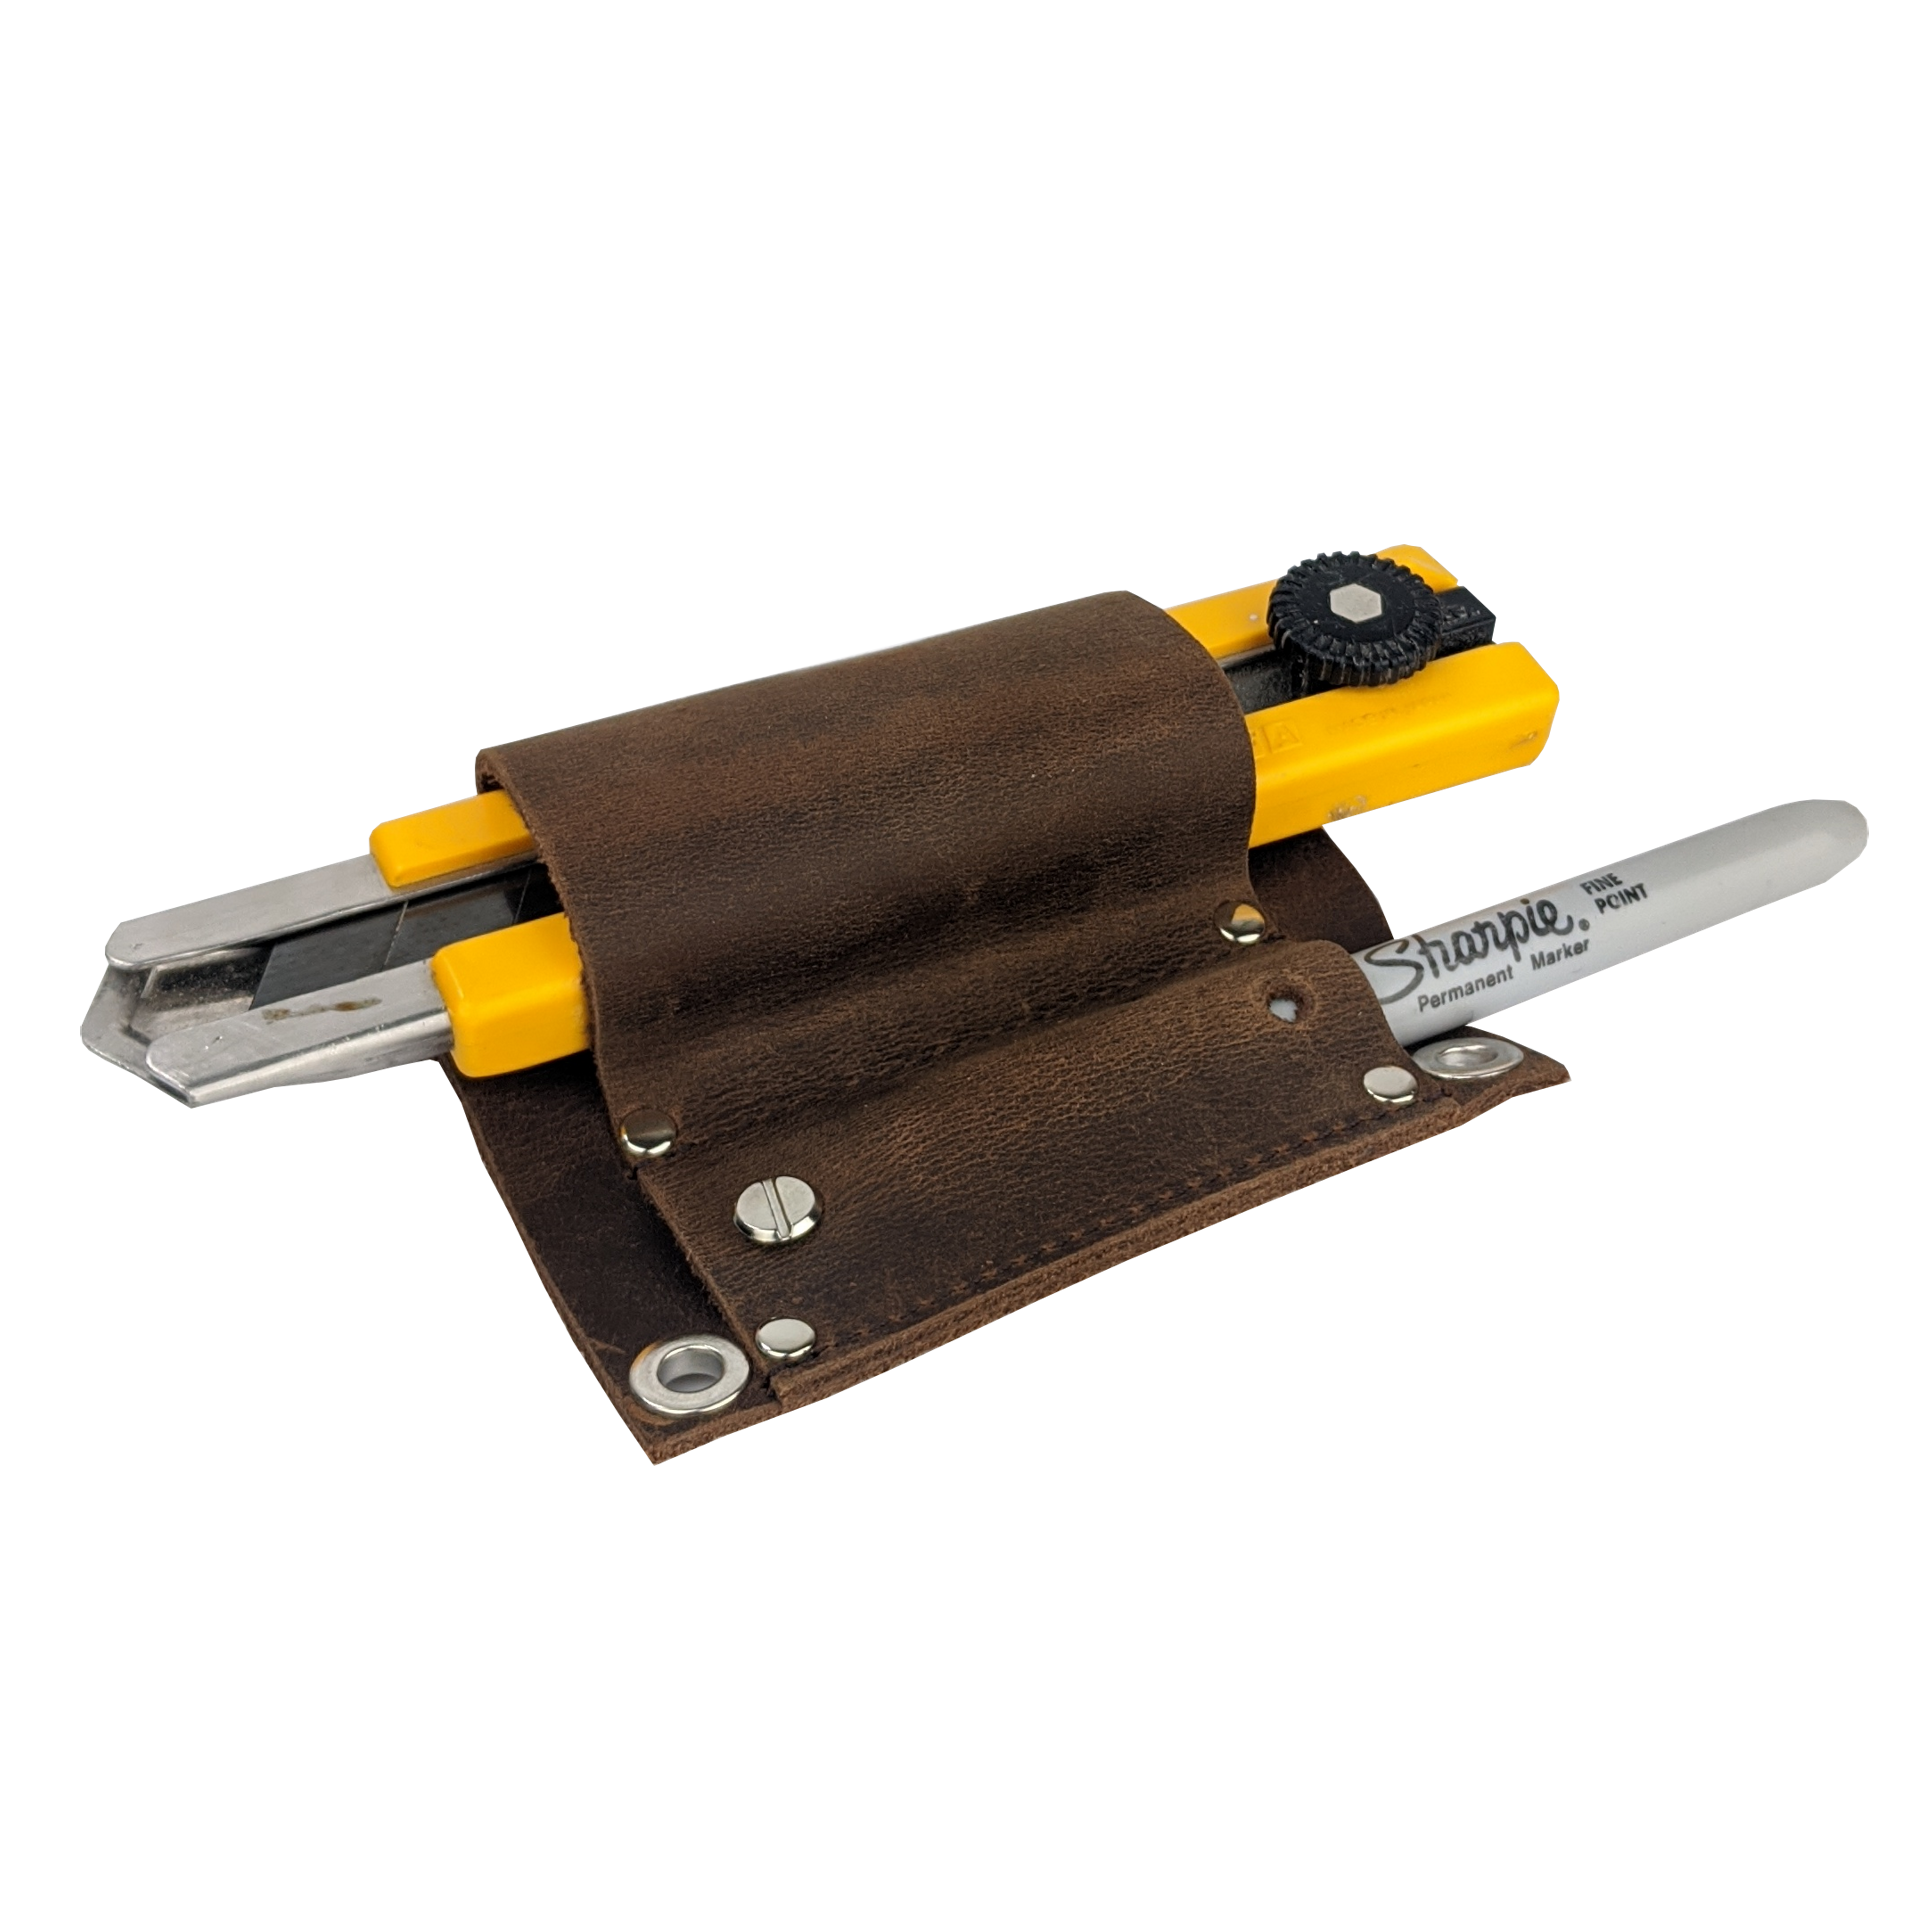 Knife Holster for Trim Carpenter's Pouch